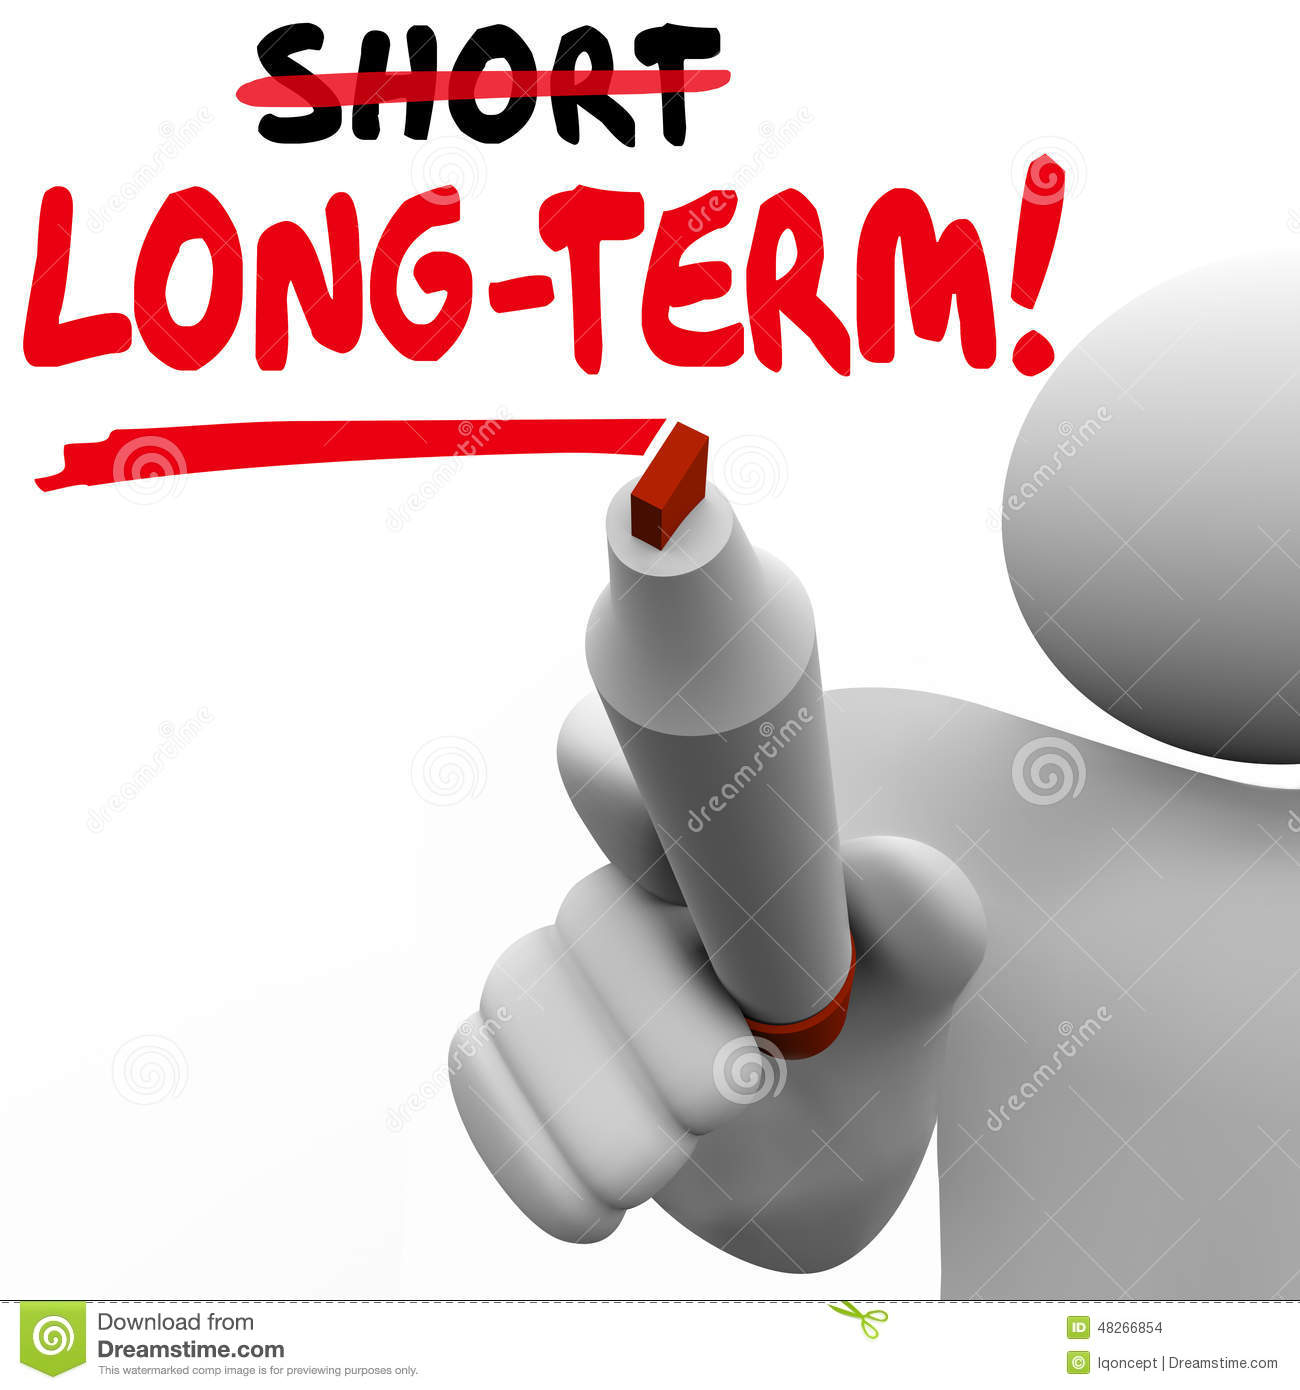 Short-Term Investments Clip Art